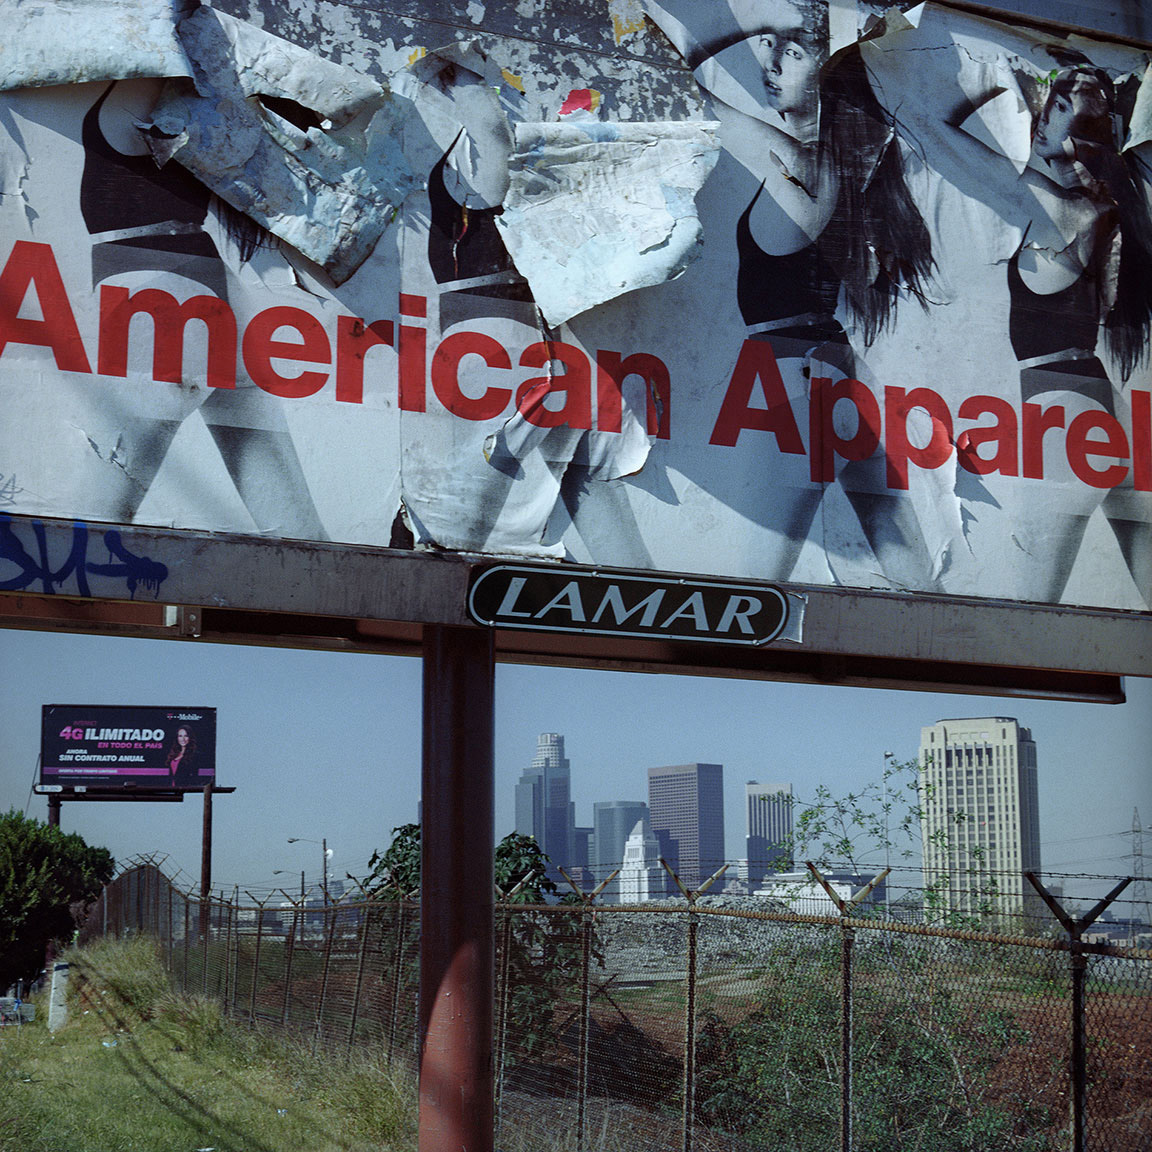 53-TheAmericanApparel-ThomasAlleman-Website-092214